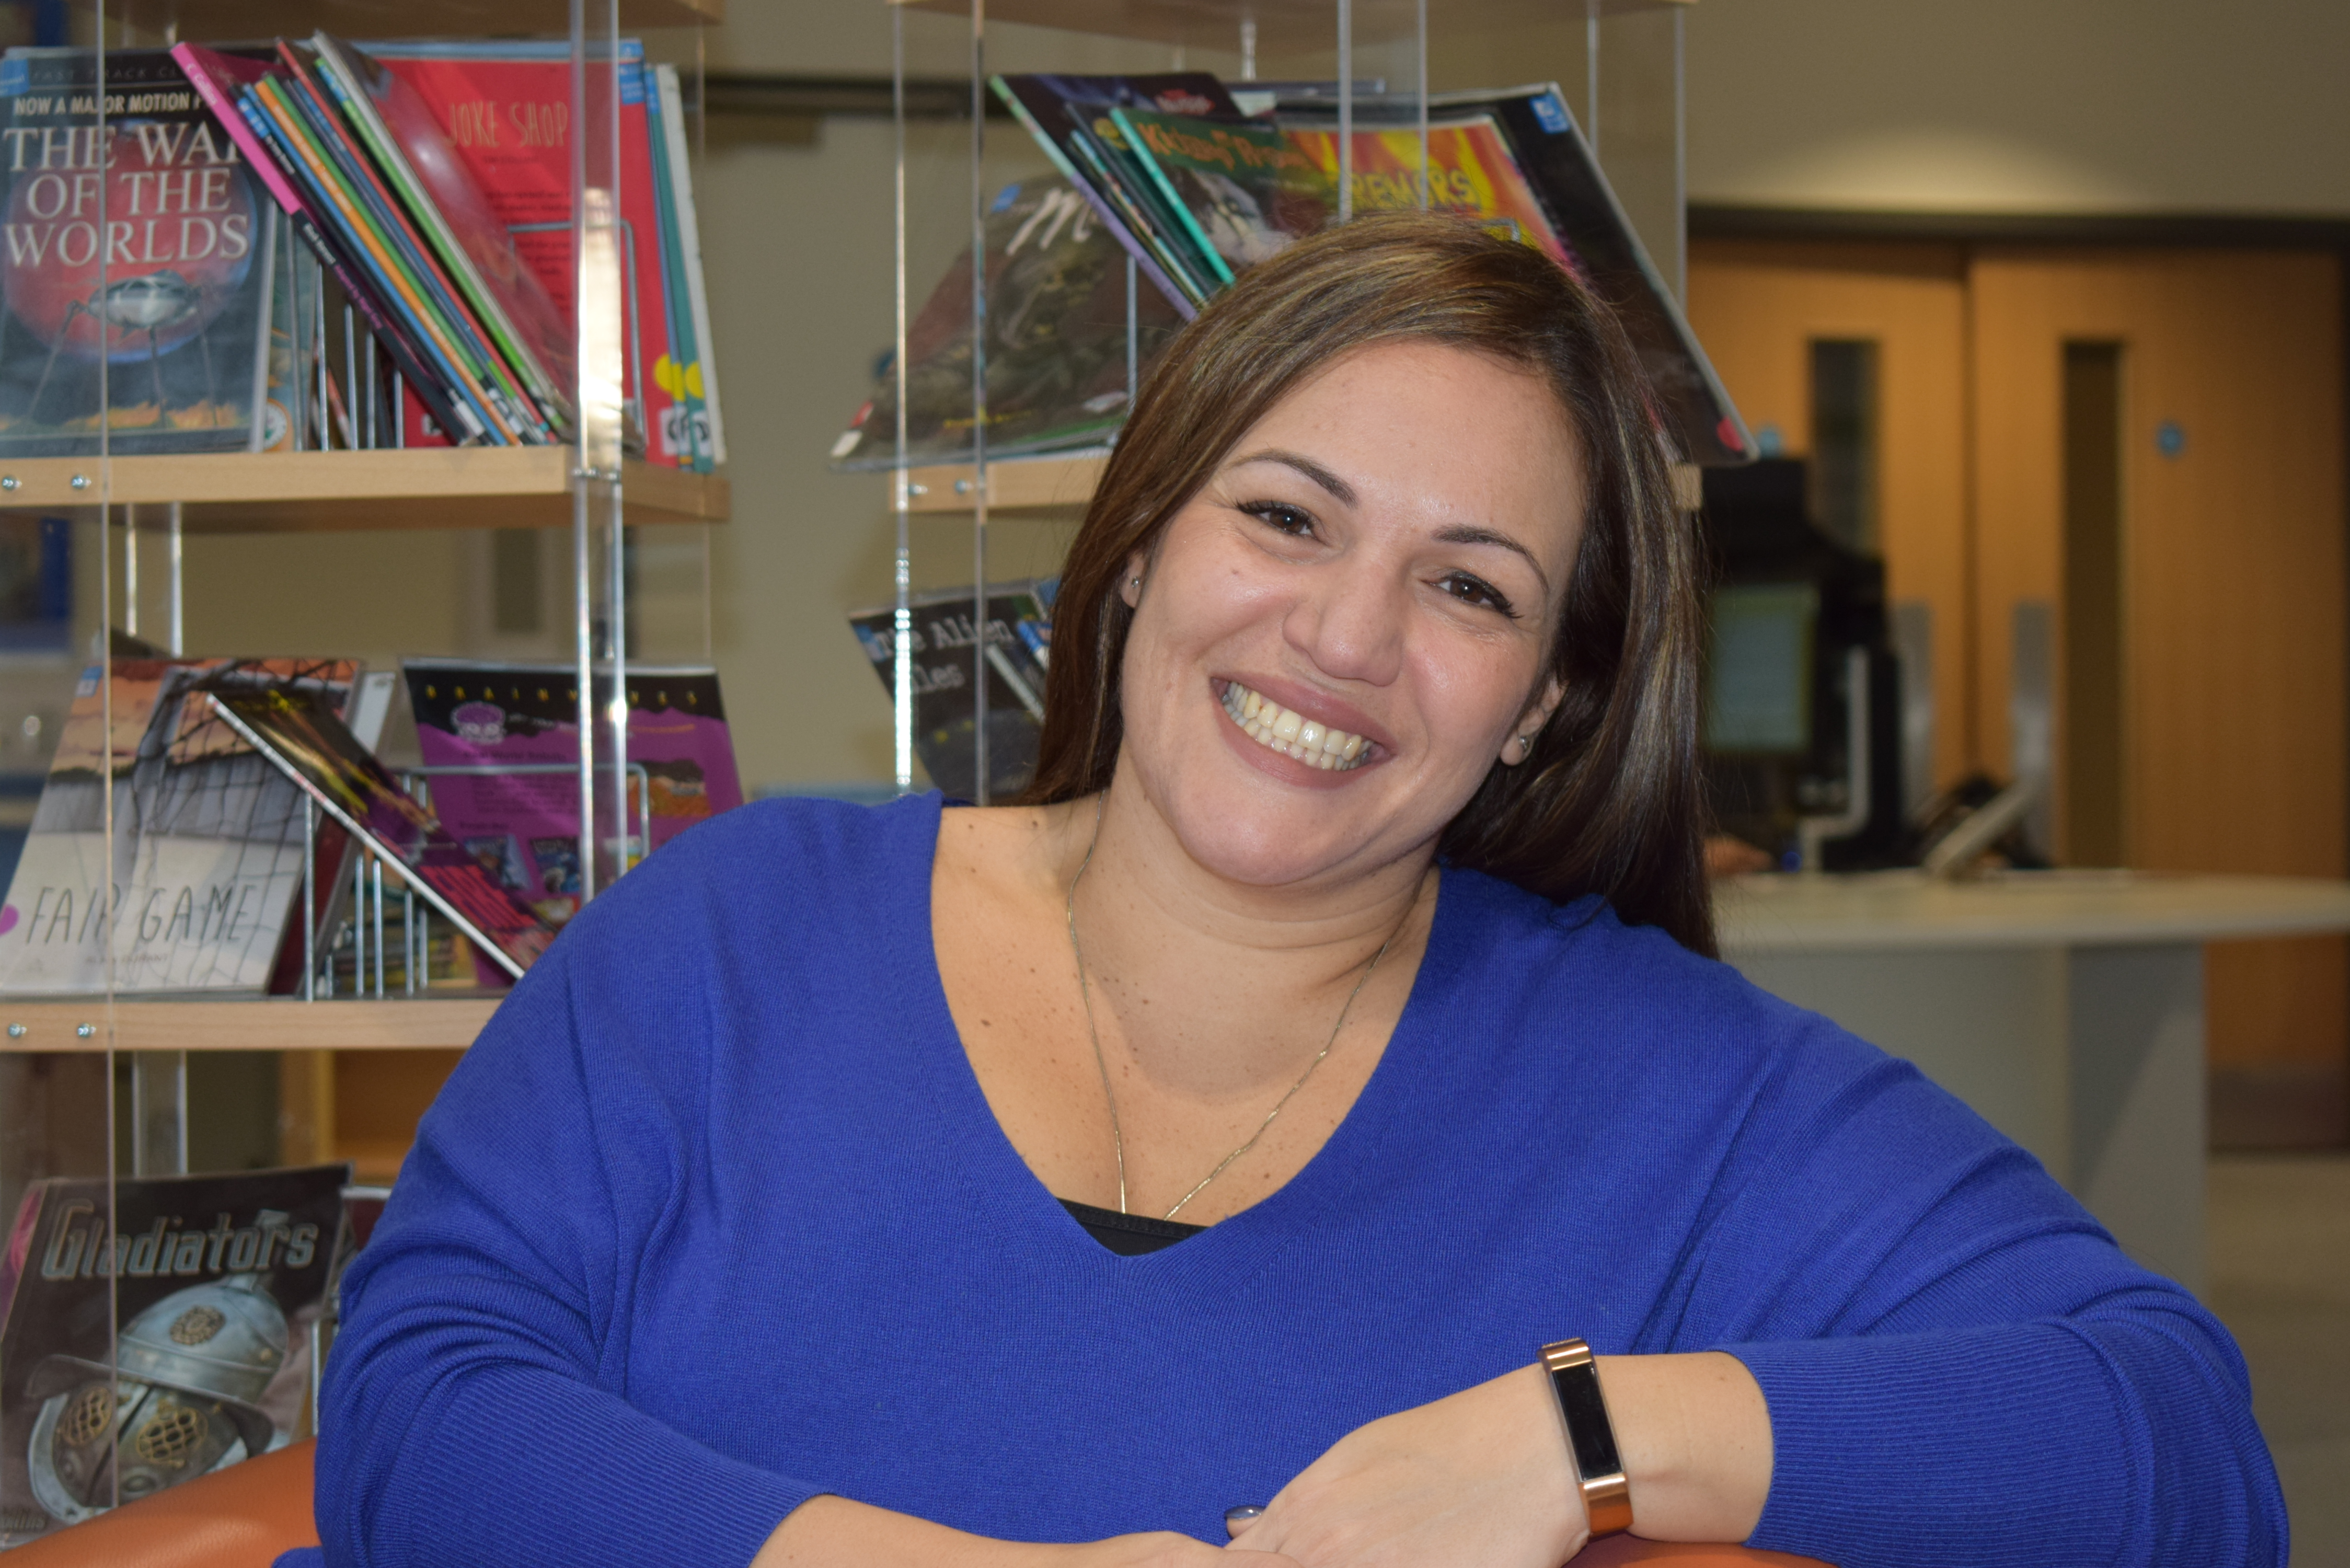 UK teacher Andria Zafirakou has made it into the final 10 shortlisted for this year's Varkey Foundation Global Teacher Prize (Varkey Foundation/PA)  'Education opens up opportunities': Bill Gates hails teaching prize finalists 6d57ea65 2646 4c2c 8f60 d345f153c7e1